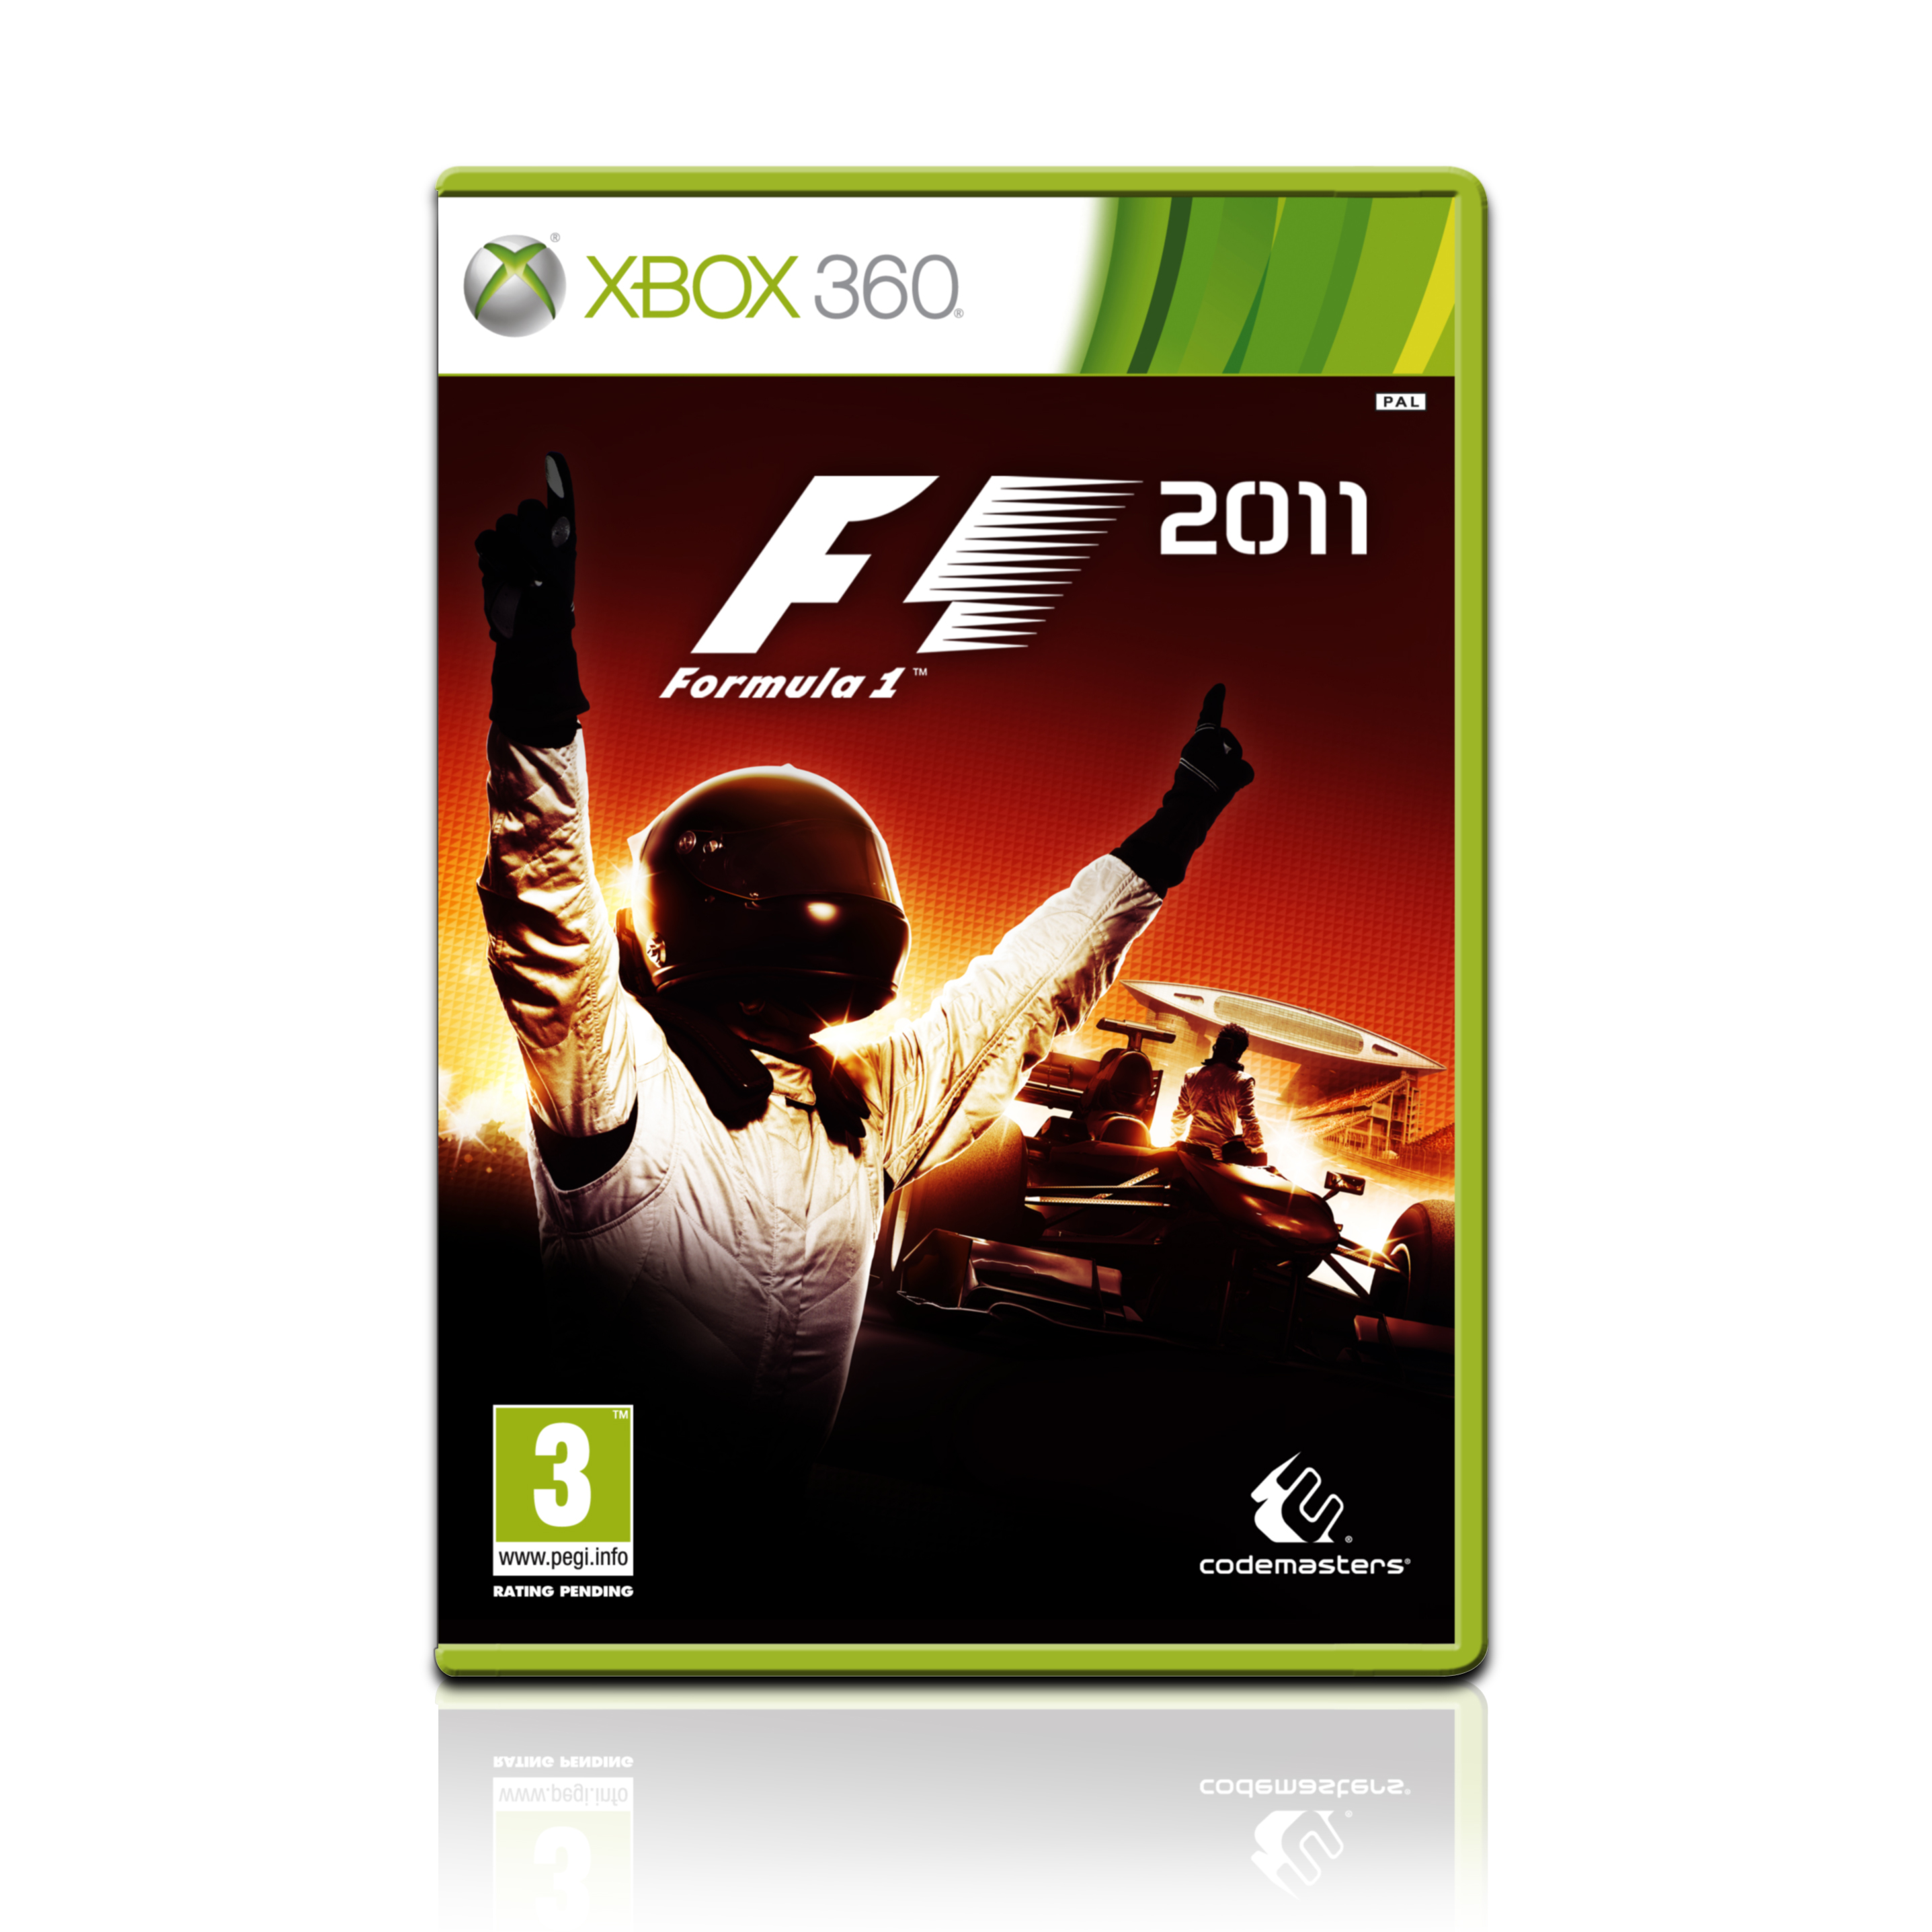 F1™ Formula One Video Game 2011 - Xbox 360